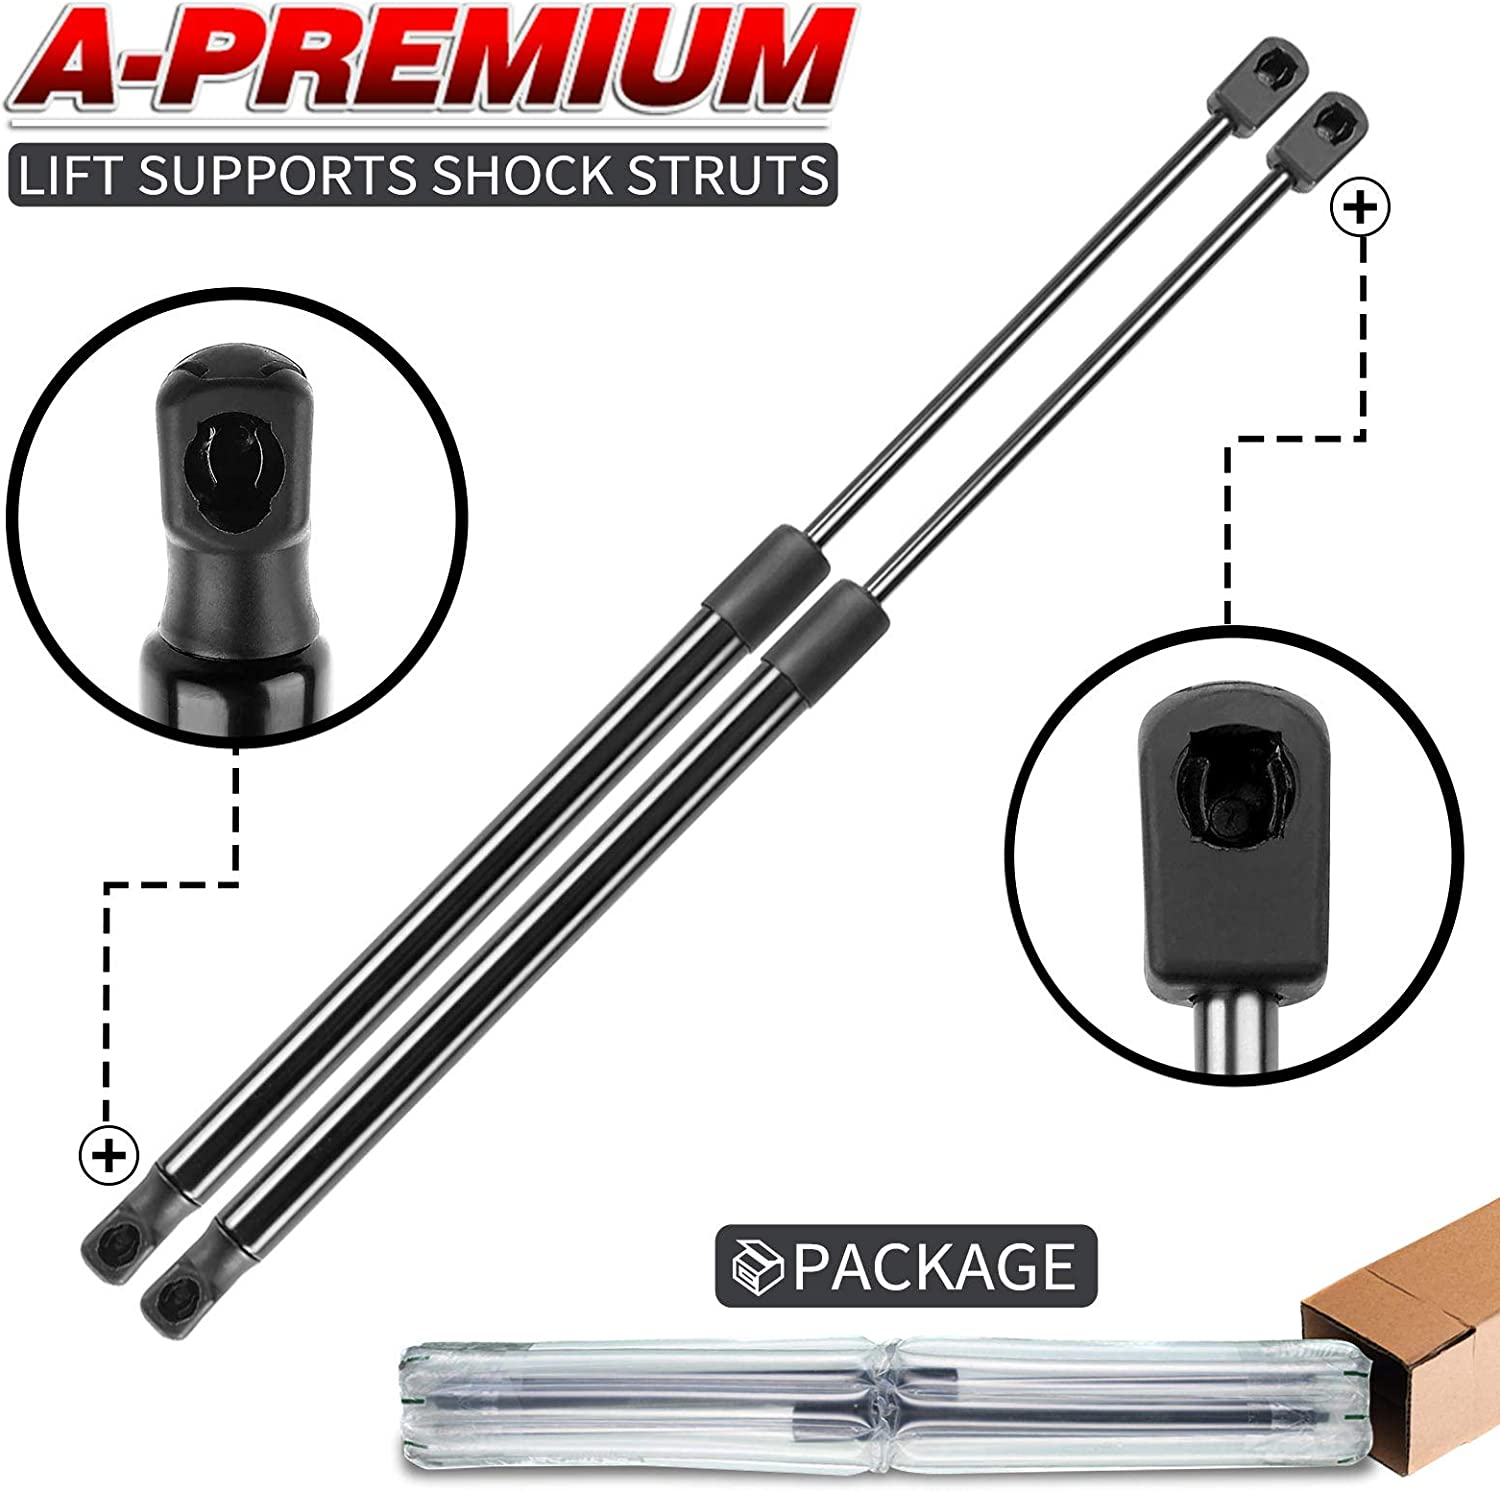 A-Premium Front Free Shipping New El Paso Mall Hood Lift Supports Ram with Dodge Compatible 150